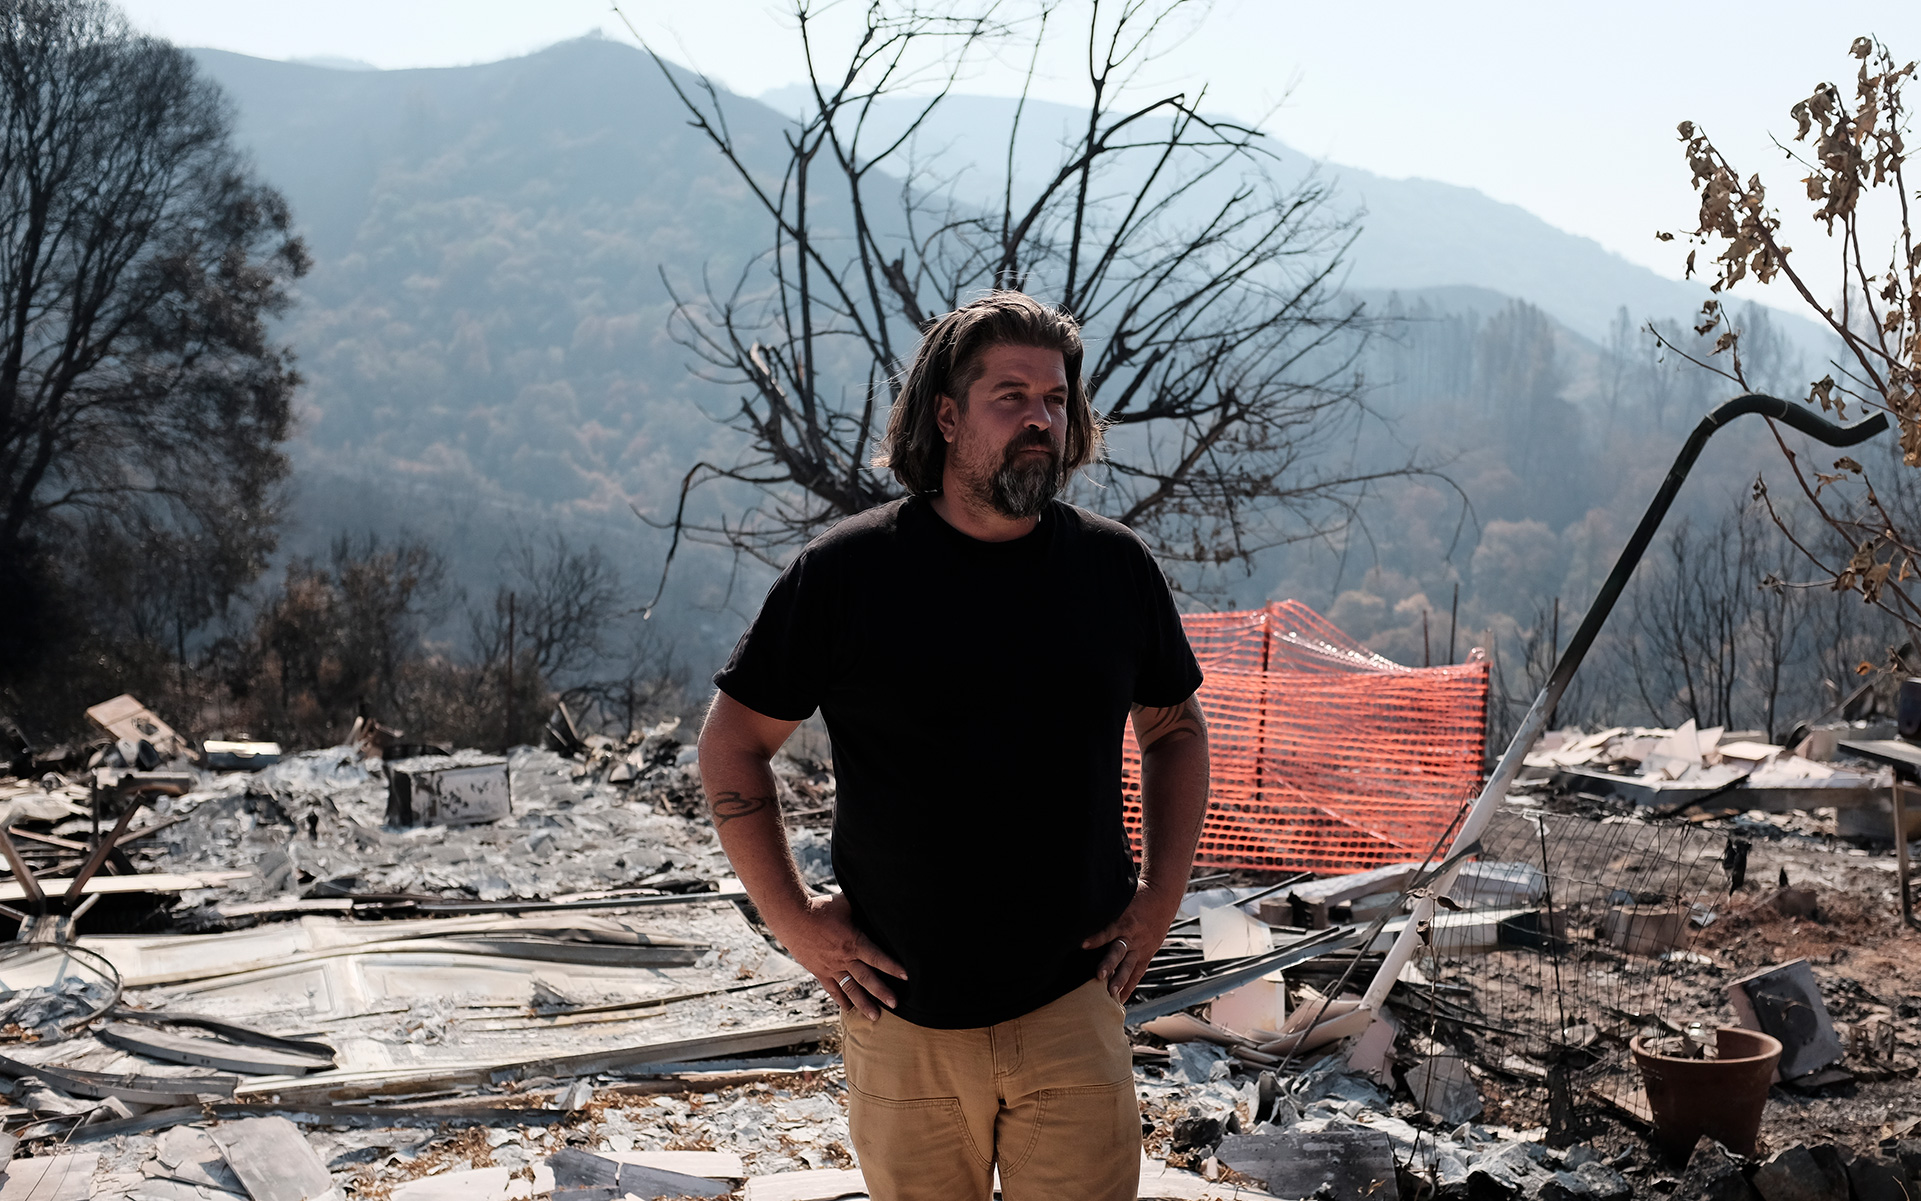 Wildfire Torches Grower's Home, 1,200-Pound Cannabis Harvest in California